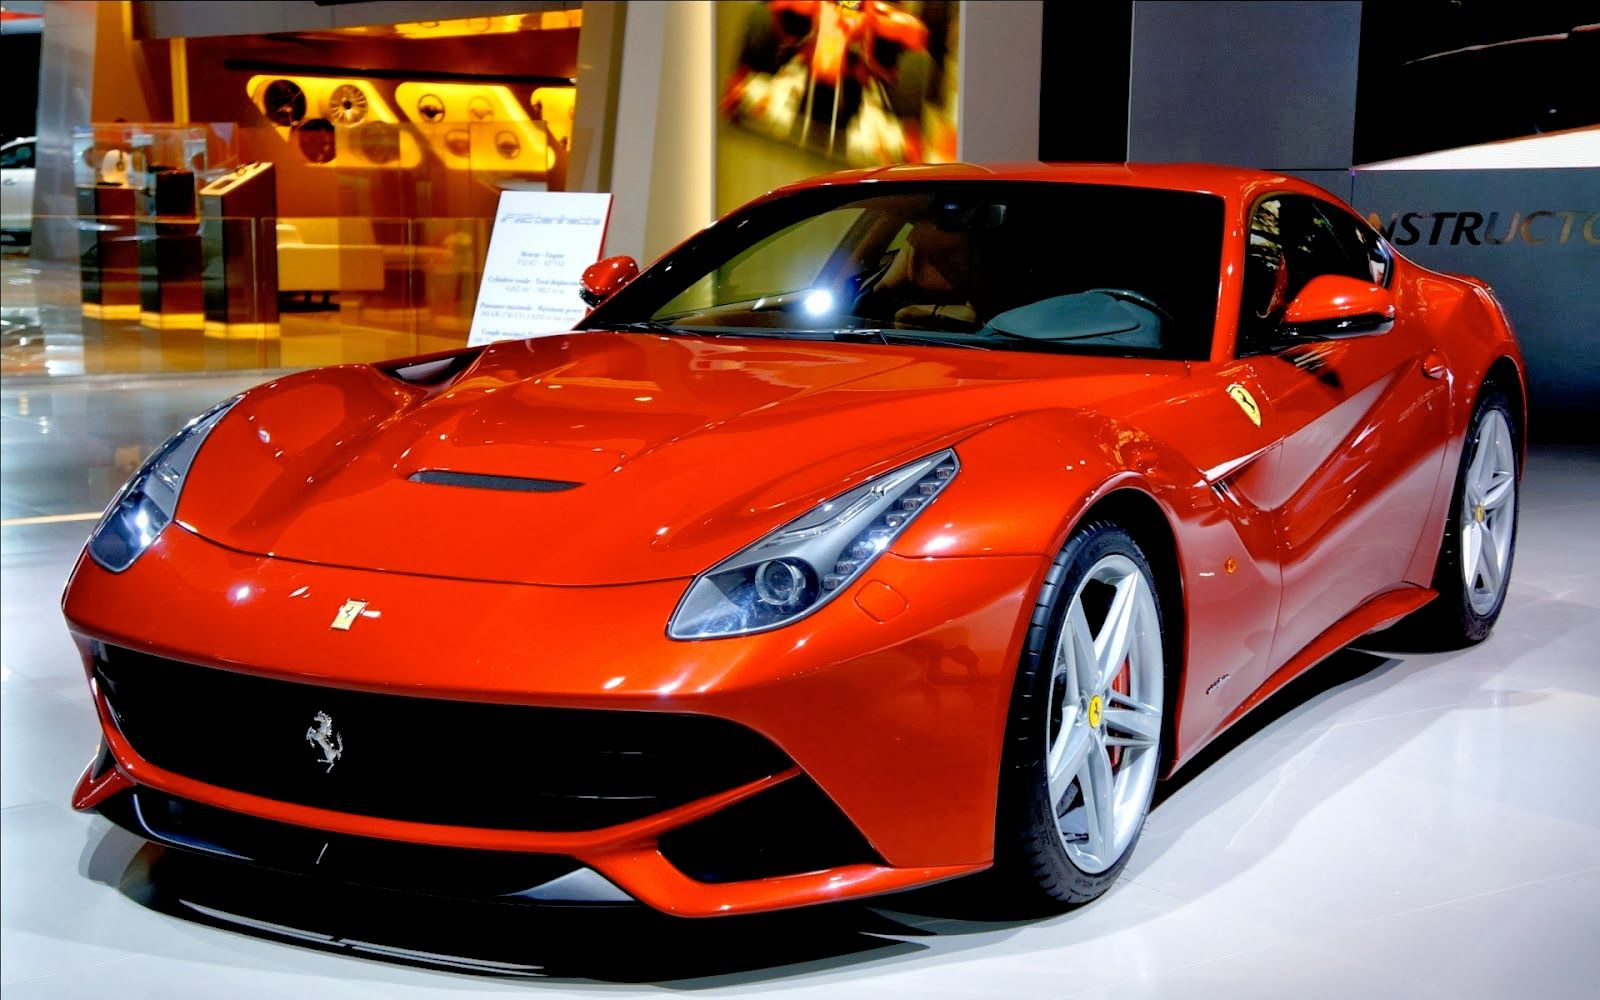 Elegant Ferrari Cars Hd Wallpapers 1080p To Pictures S1o With Ferrari Cars  Hd At Favorite